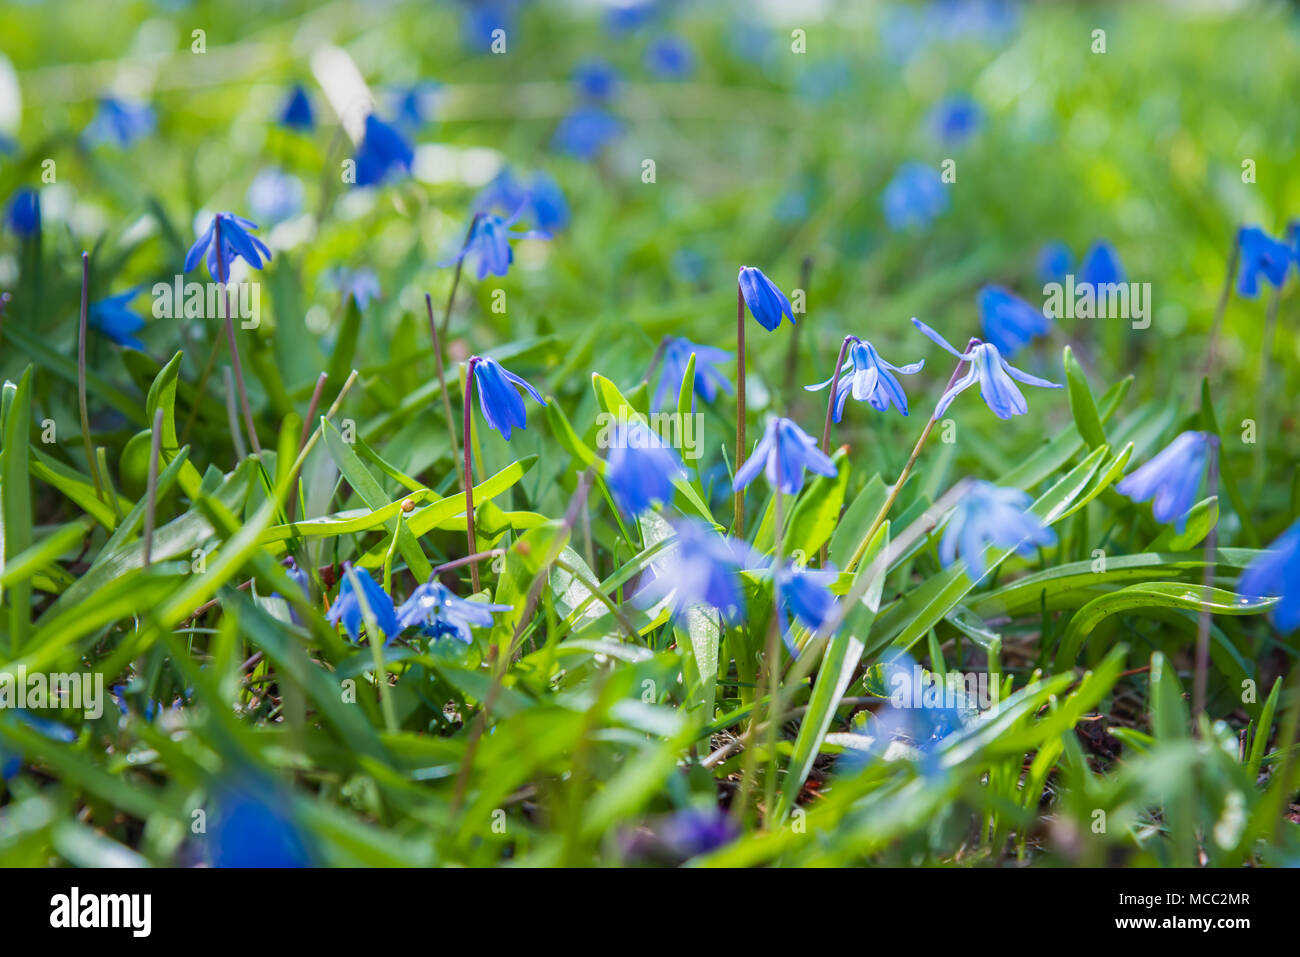 Blue Scilla Flowers Blooming In Green Grass In Early Spring Stock